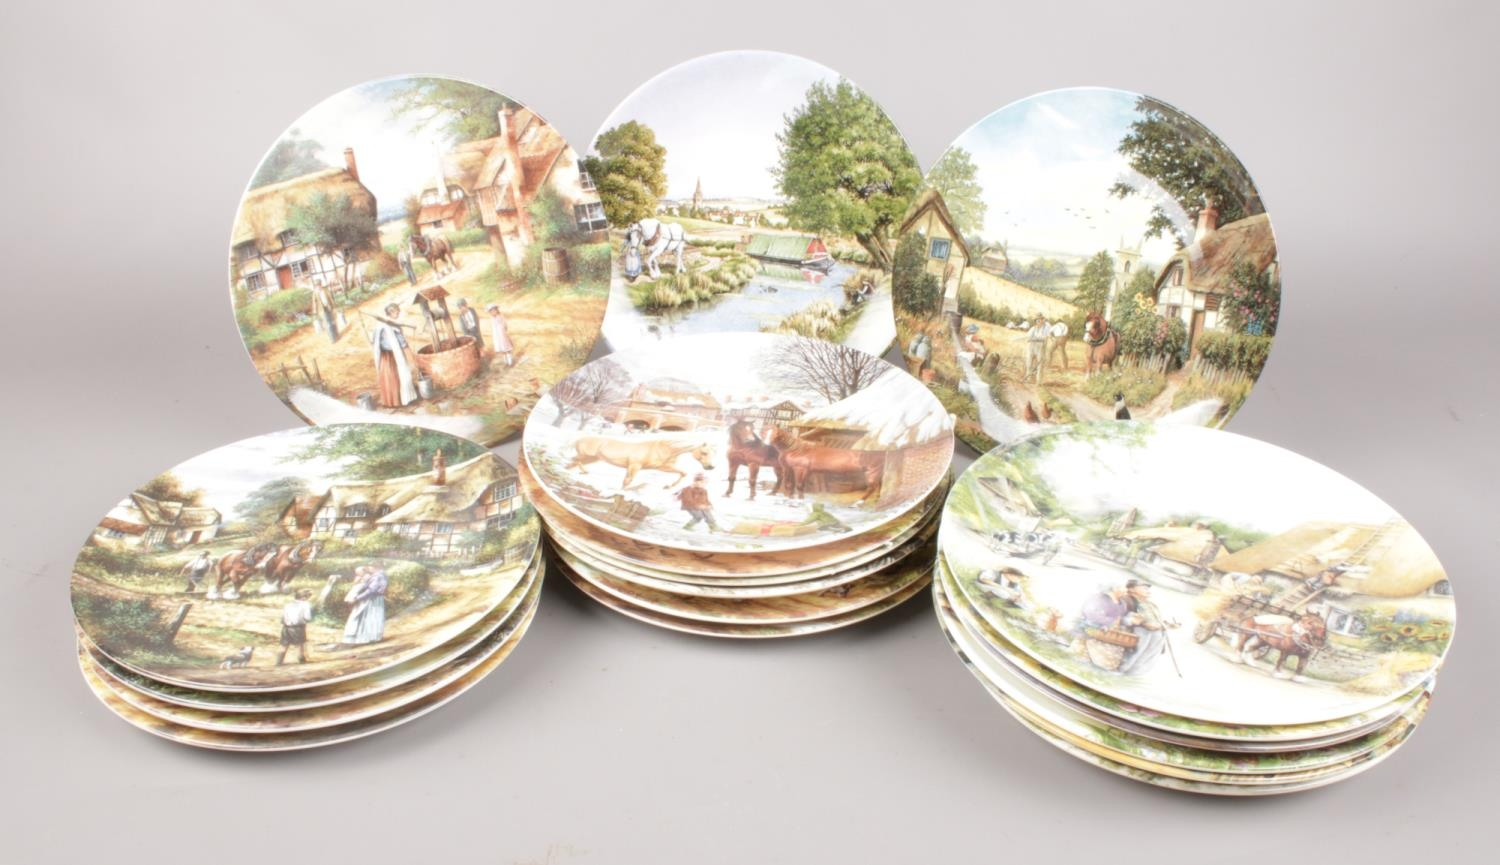 A selection of twenty collectors plates - comprising of thirteen 'Wedgwood' limited edition